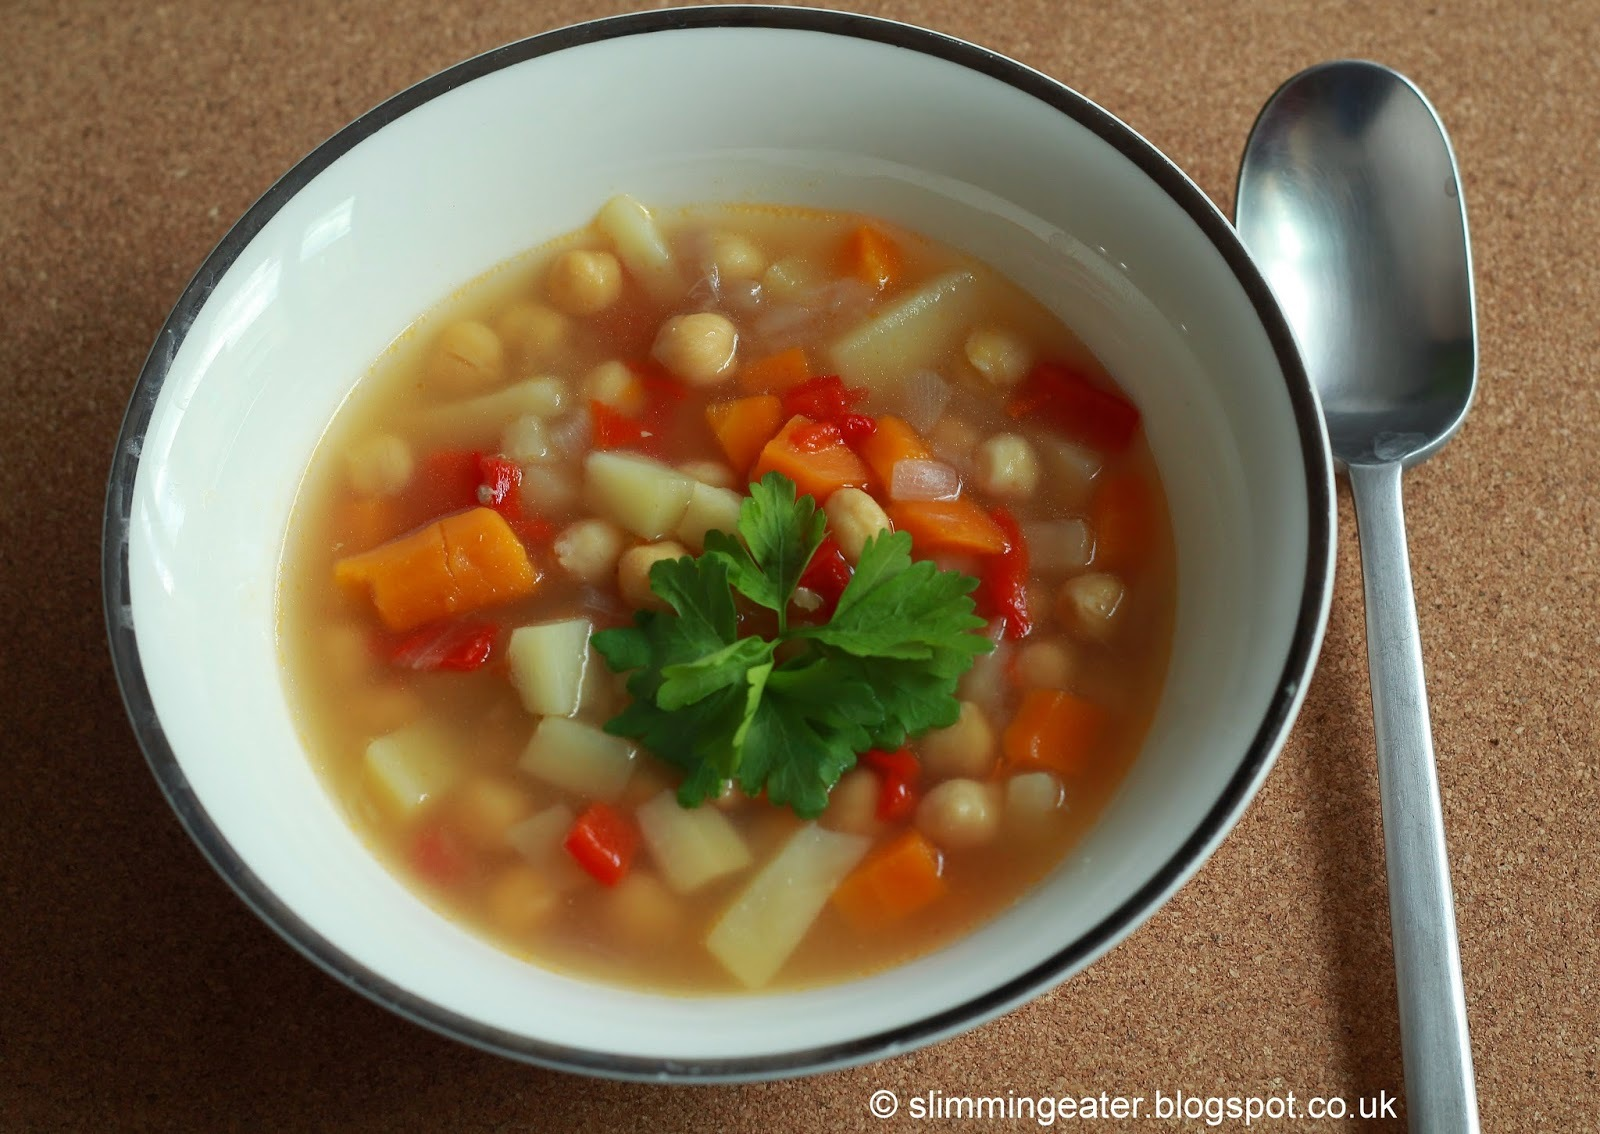 Vegetable and chickpea soup